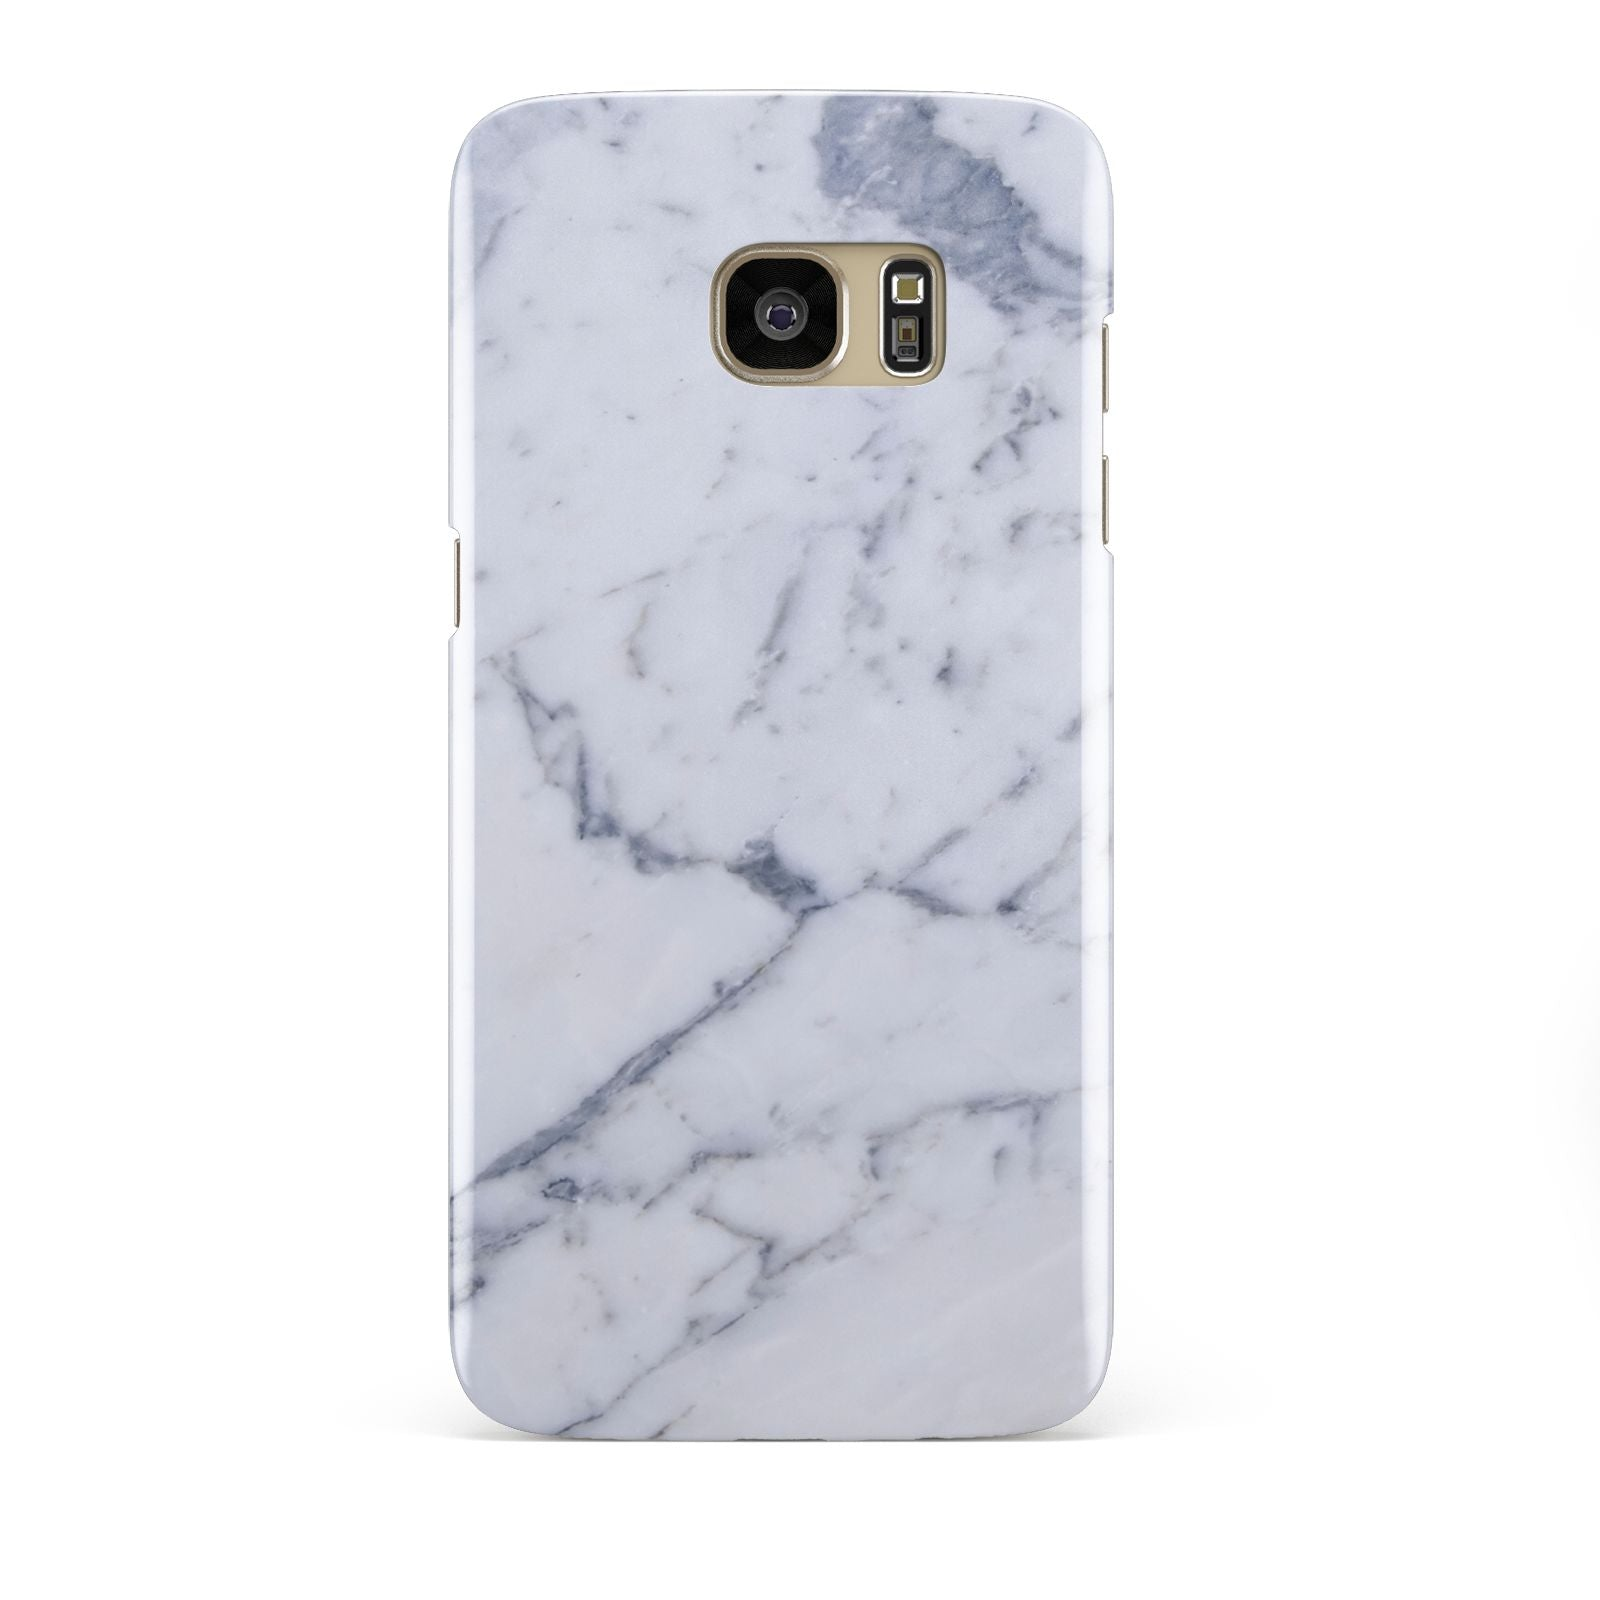 Faux Marble Grey White Samsung Galaxy S7 Edge Case